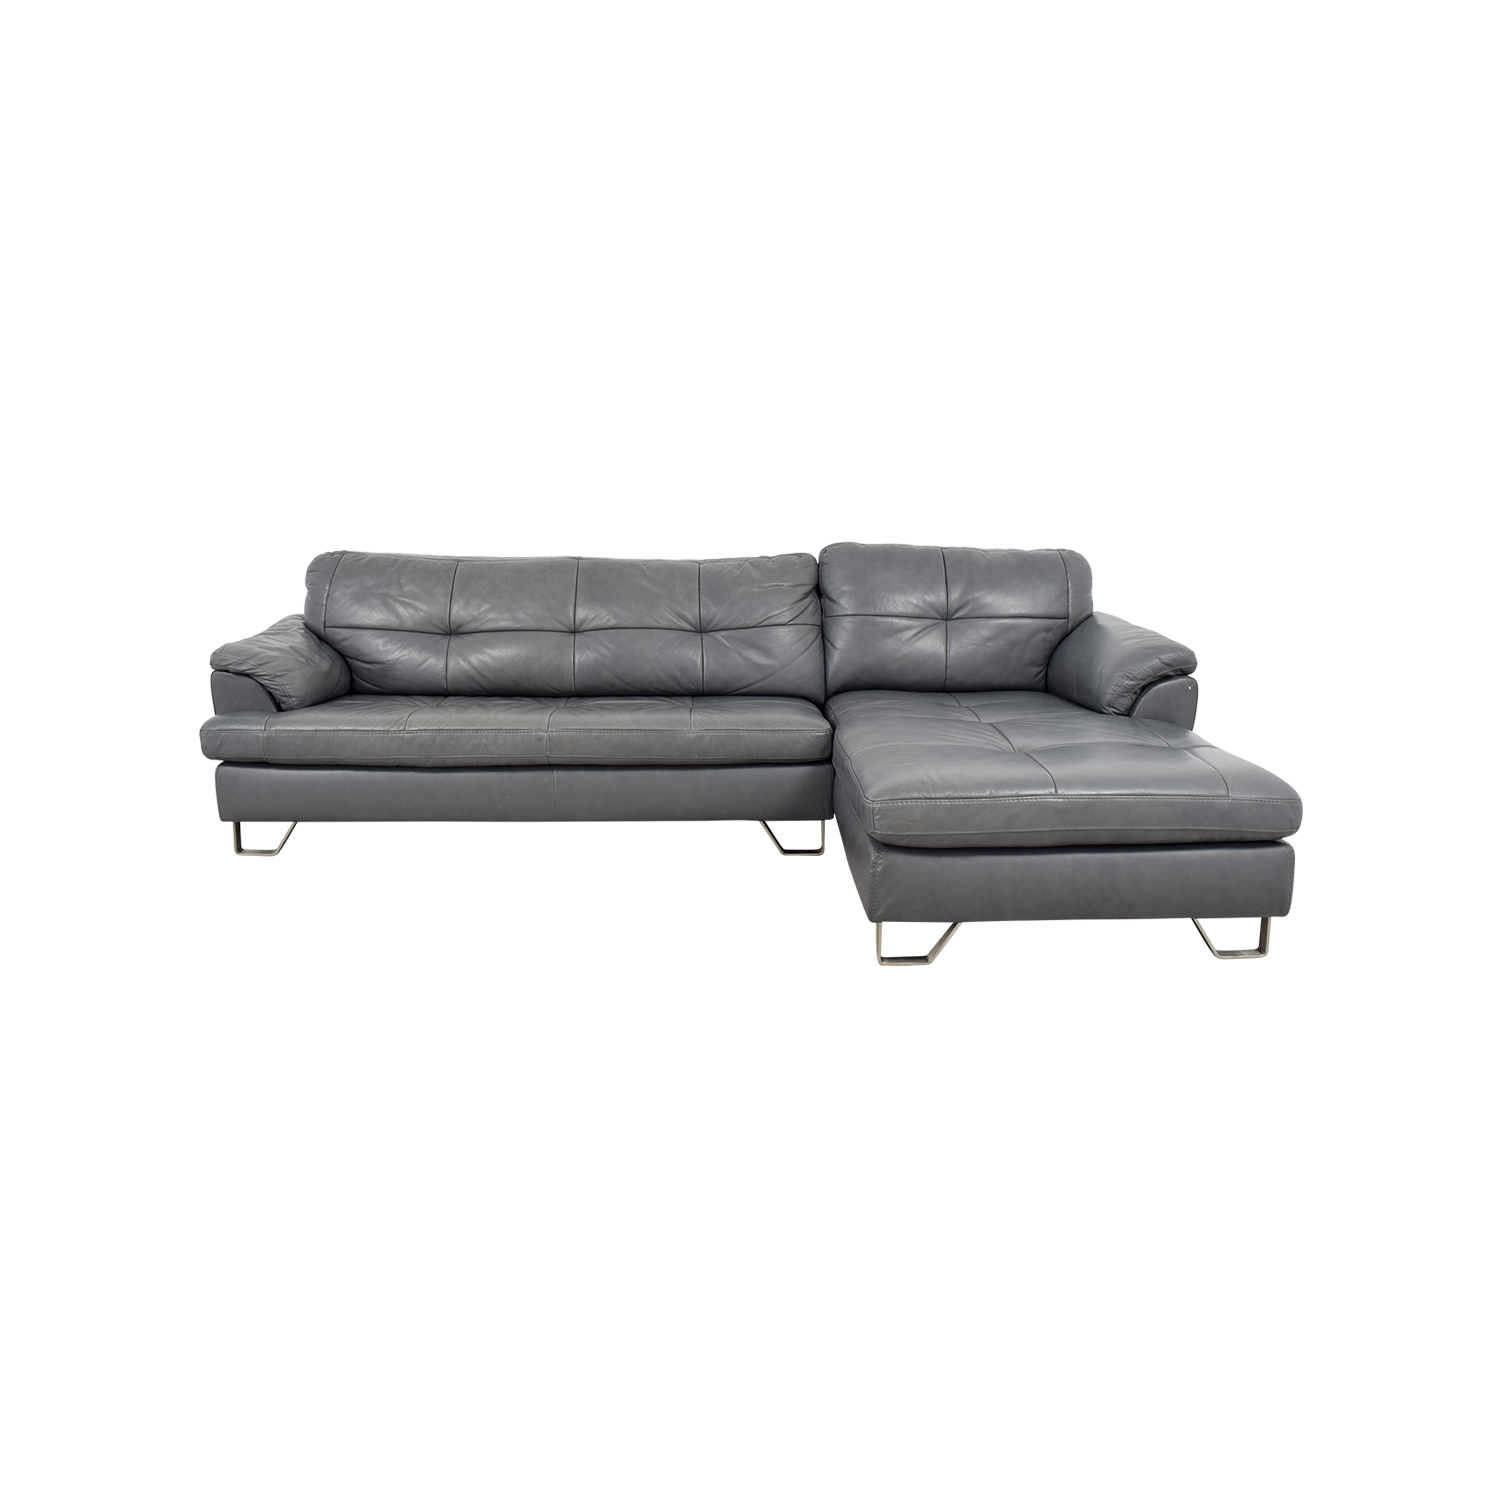 Ashley Furniture Gray Tufted Sectional Sofa Sofas